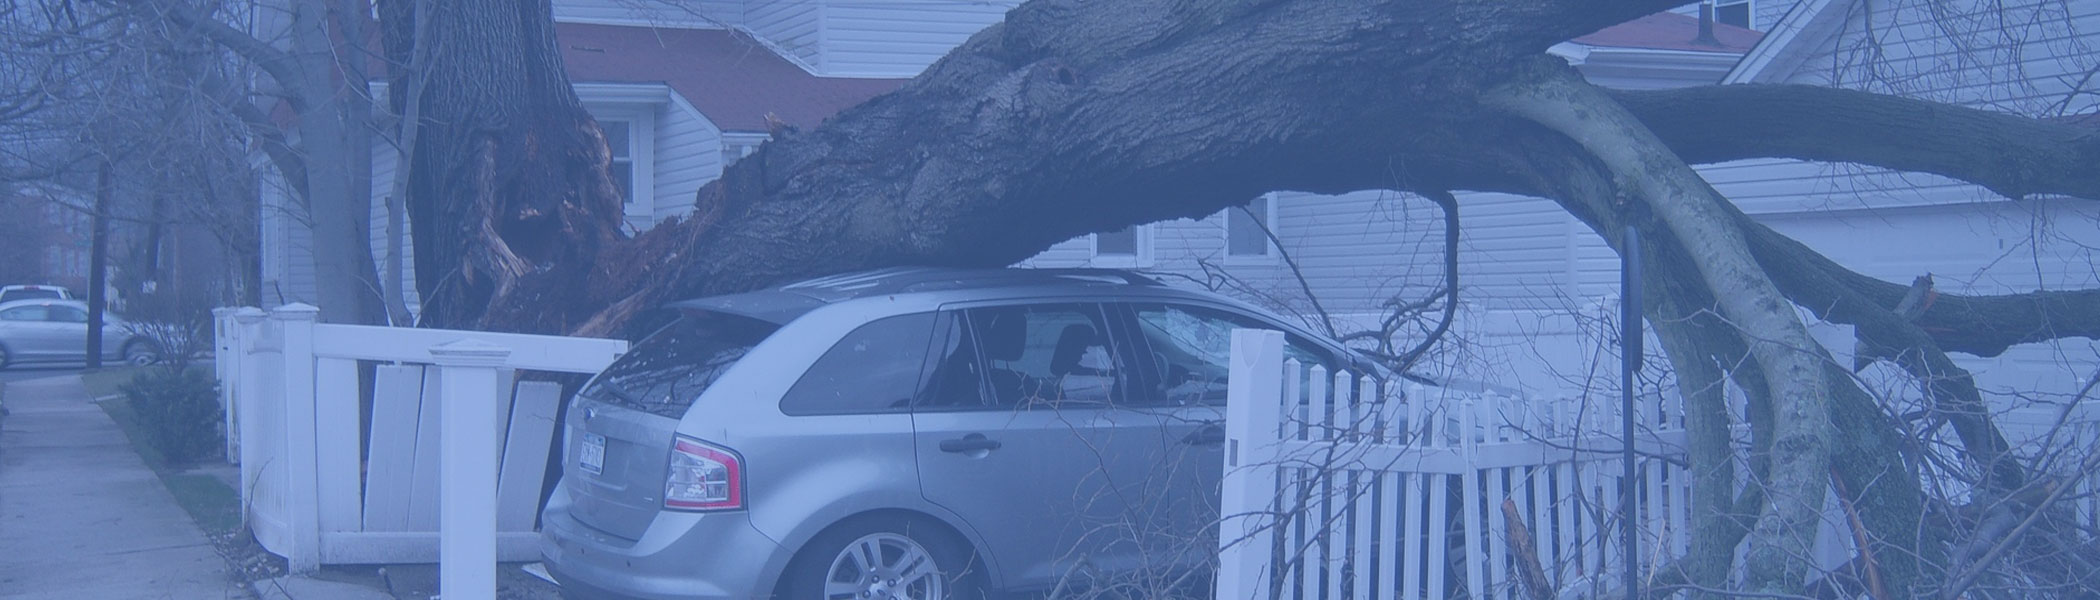 tree falls on car